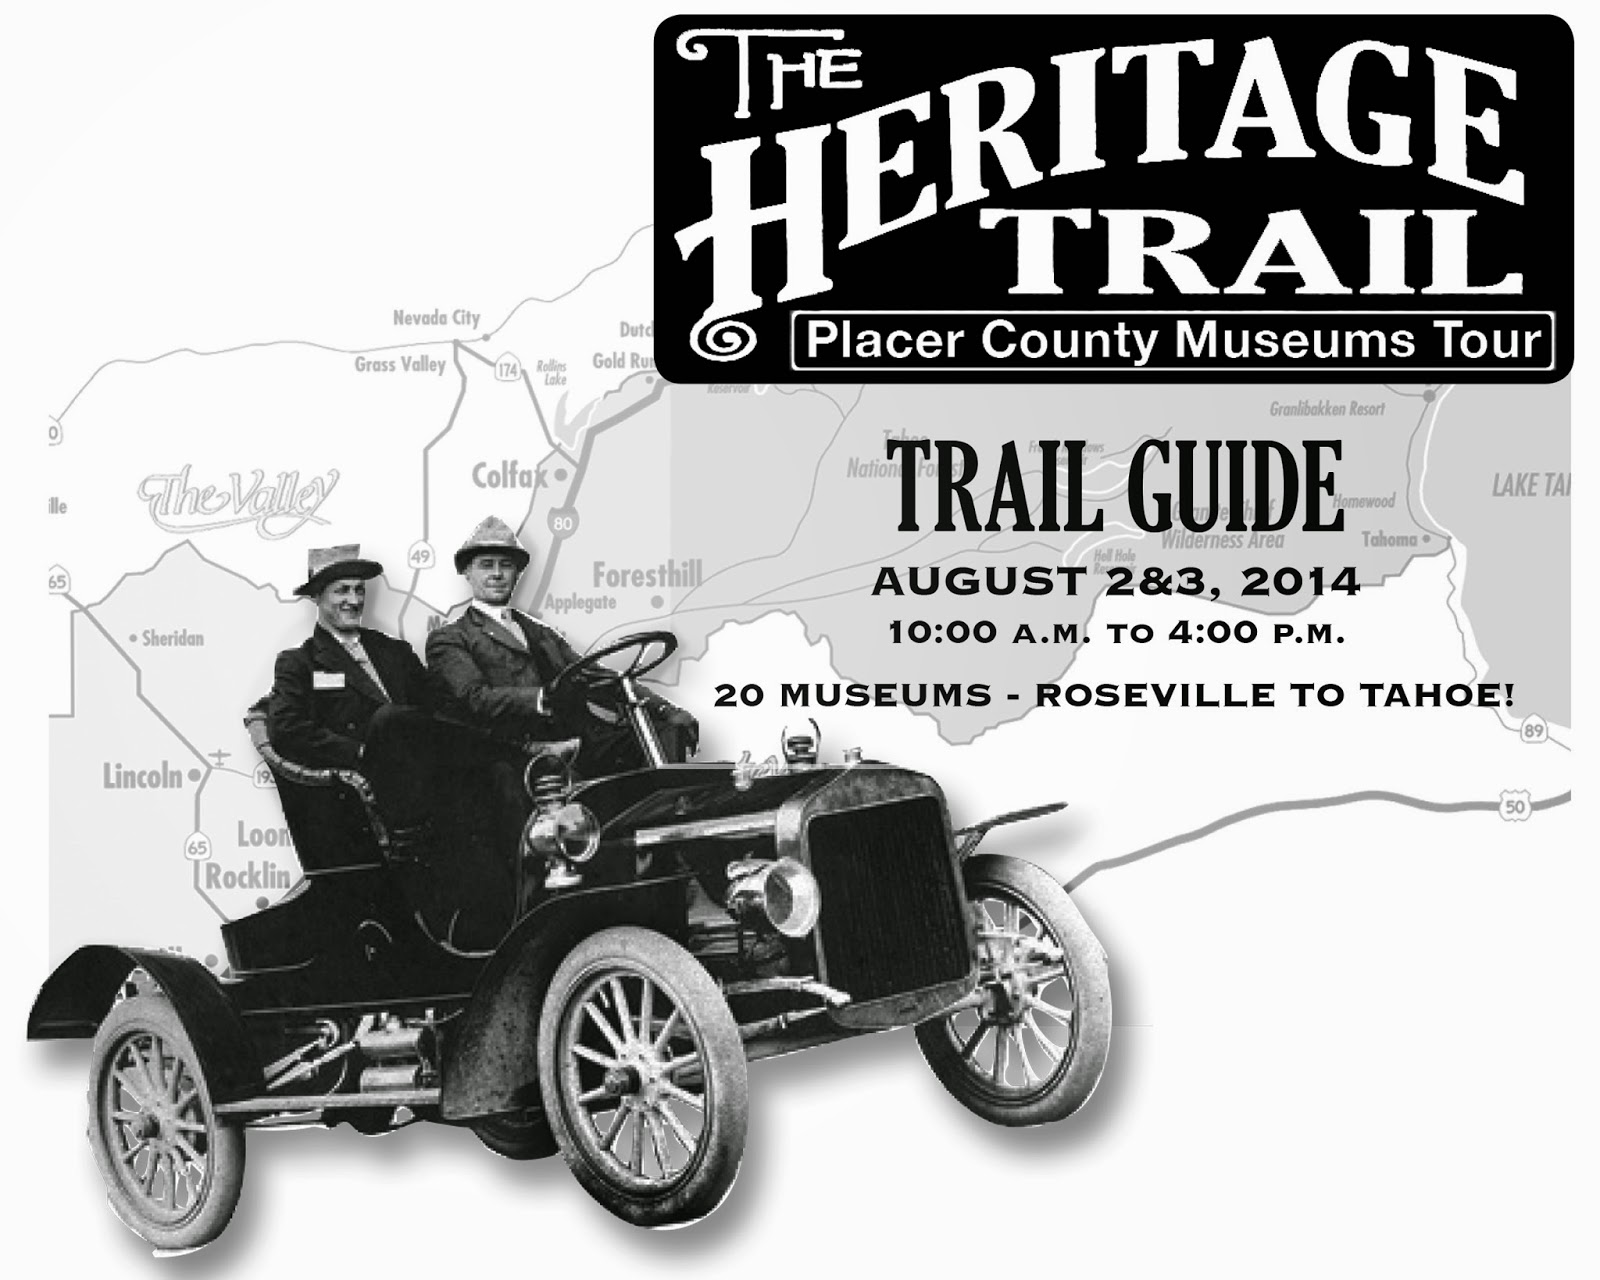 http://www.placer.ca.gov/~/media/fac/fac%20%20%20museums%20division/documents/Heritage%20Trail/updated%202013%20trail%20guide%20heritage%20trail.pdf